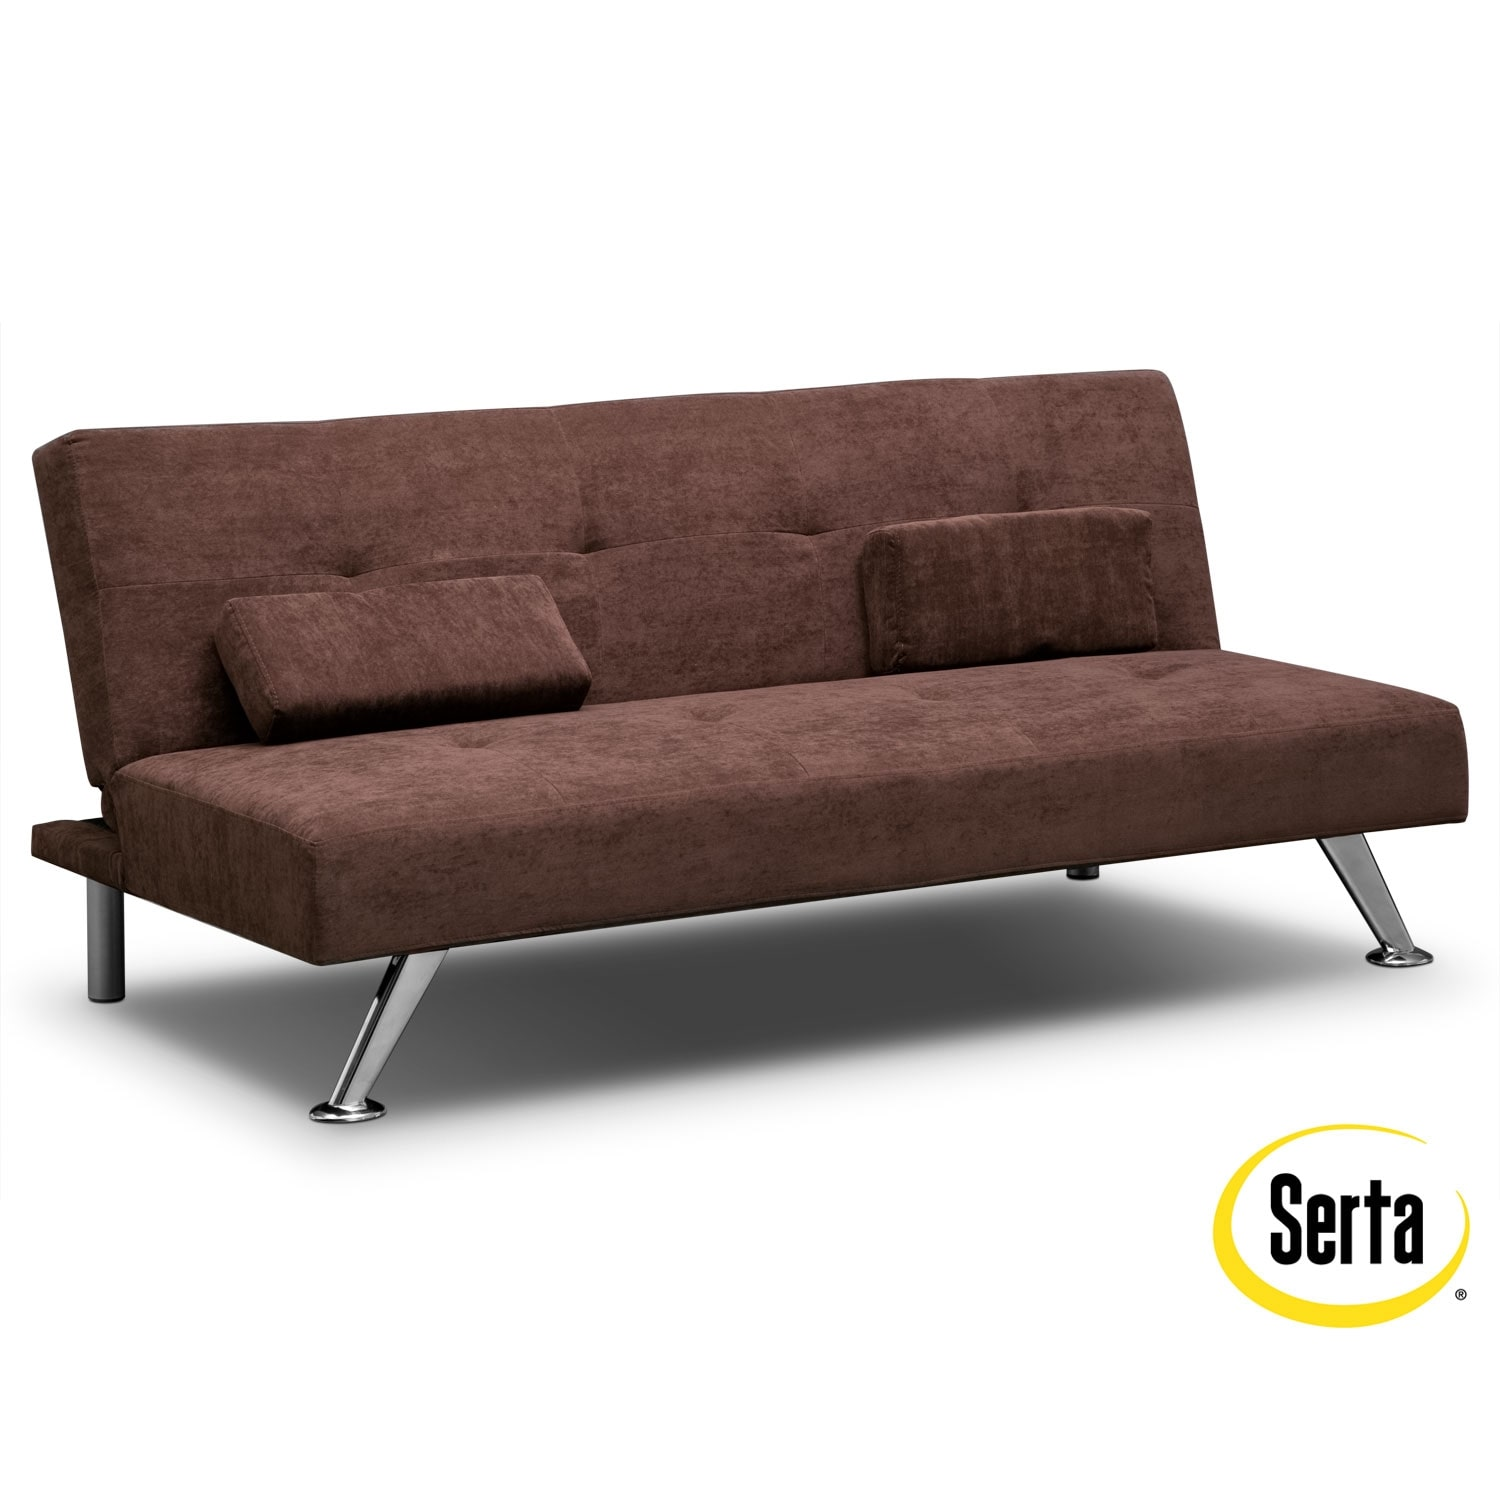 Marlene Futon Sofa Bed